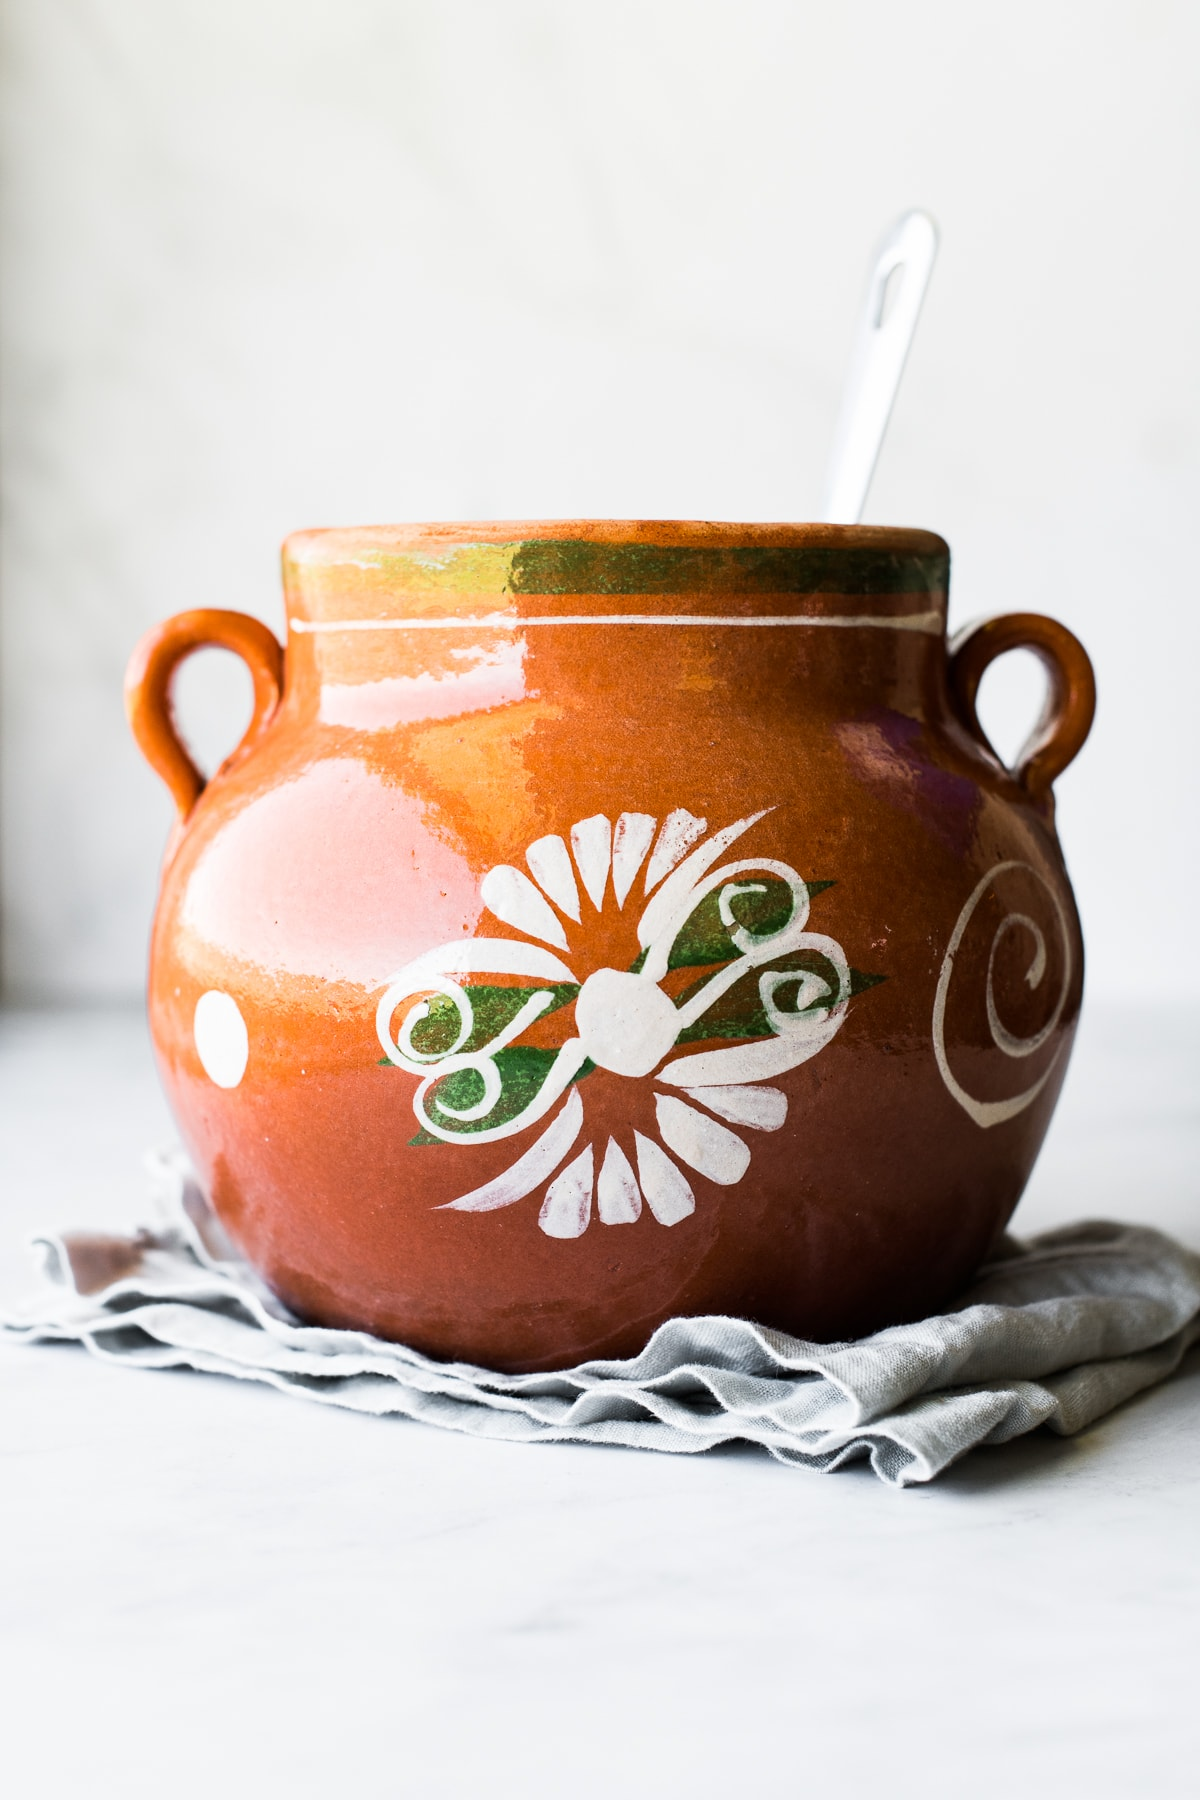 A large olla, a Mexican clay pot using for cooking